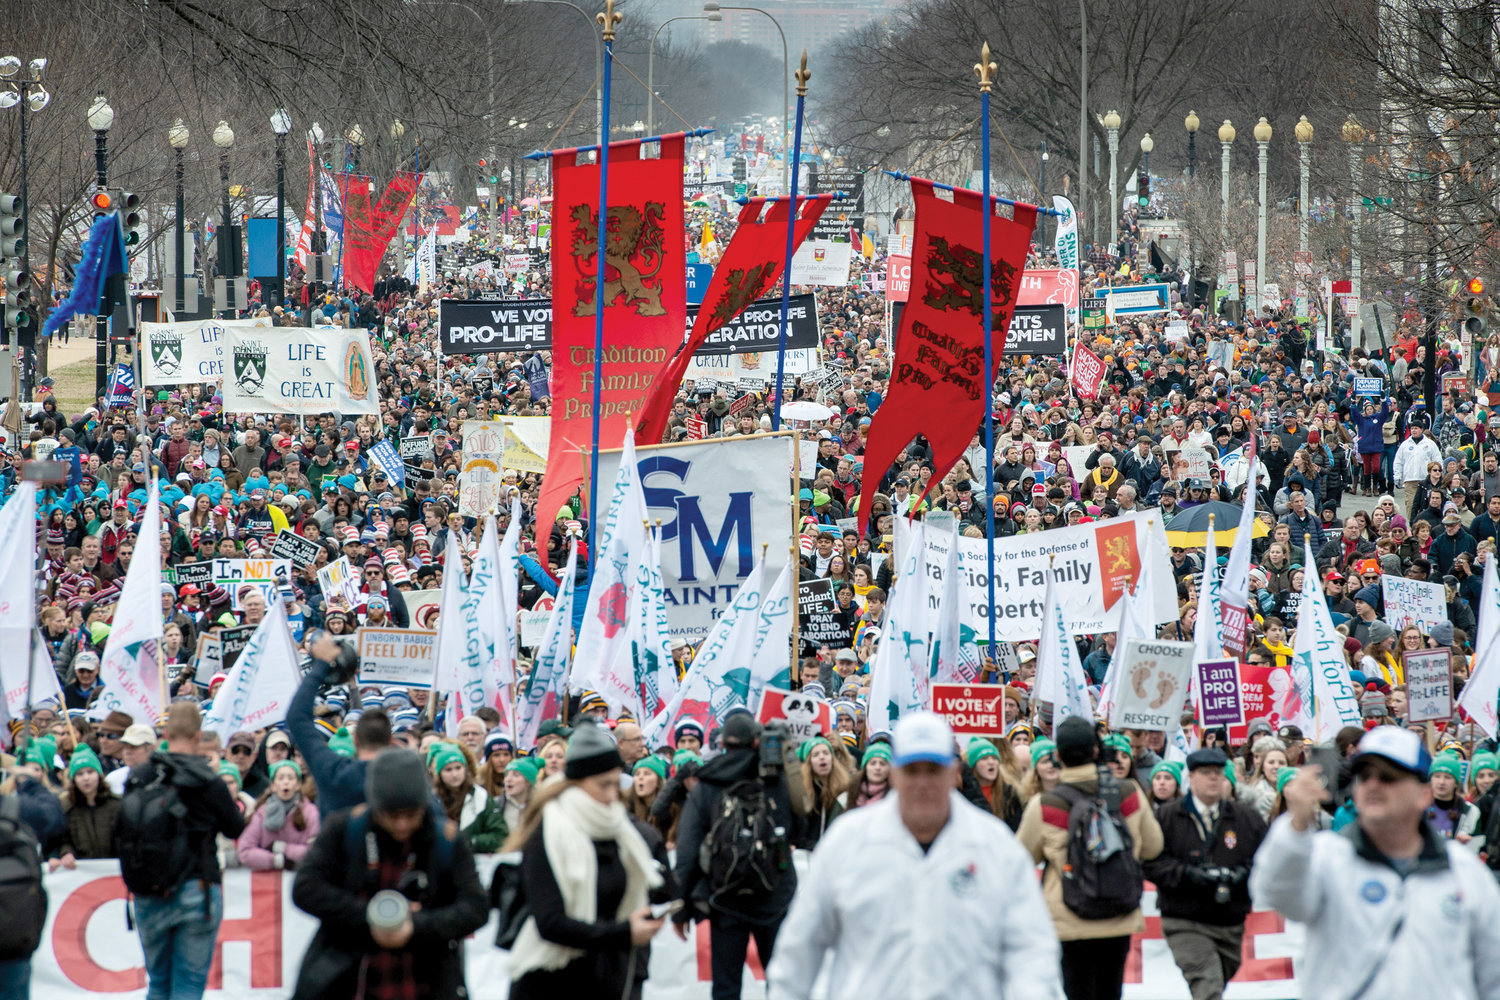 ALL FOR LIFE—A huge crowd fills Constitution Avenue in Washington, D.C., at the 47th annual March for Life Jan. 24.